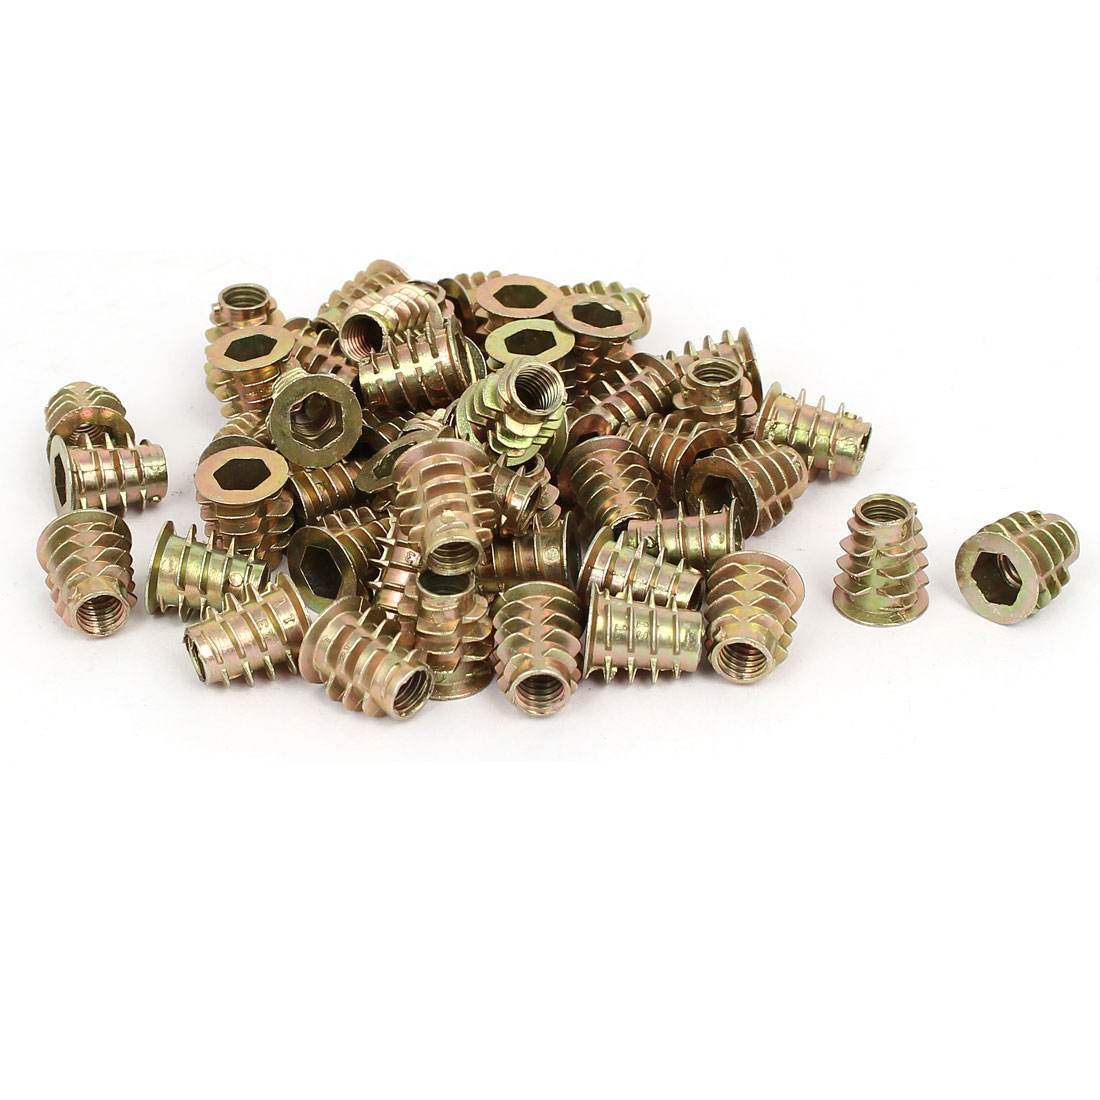 M6 x 13mm Hex Socket Head Insert Screws E-Nuts Furniture Fittings 50pcs